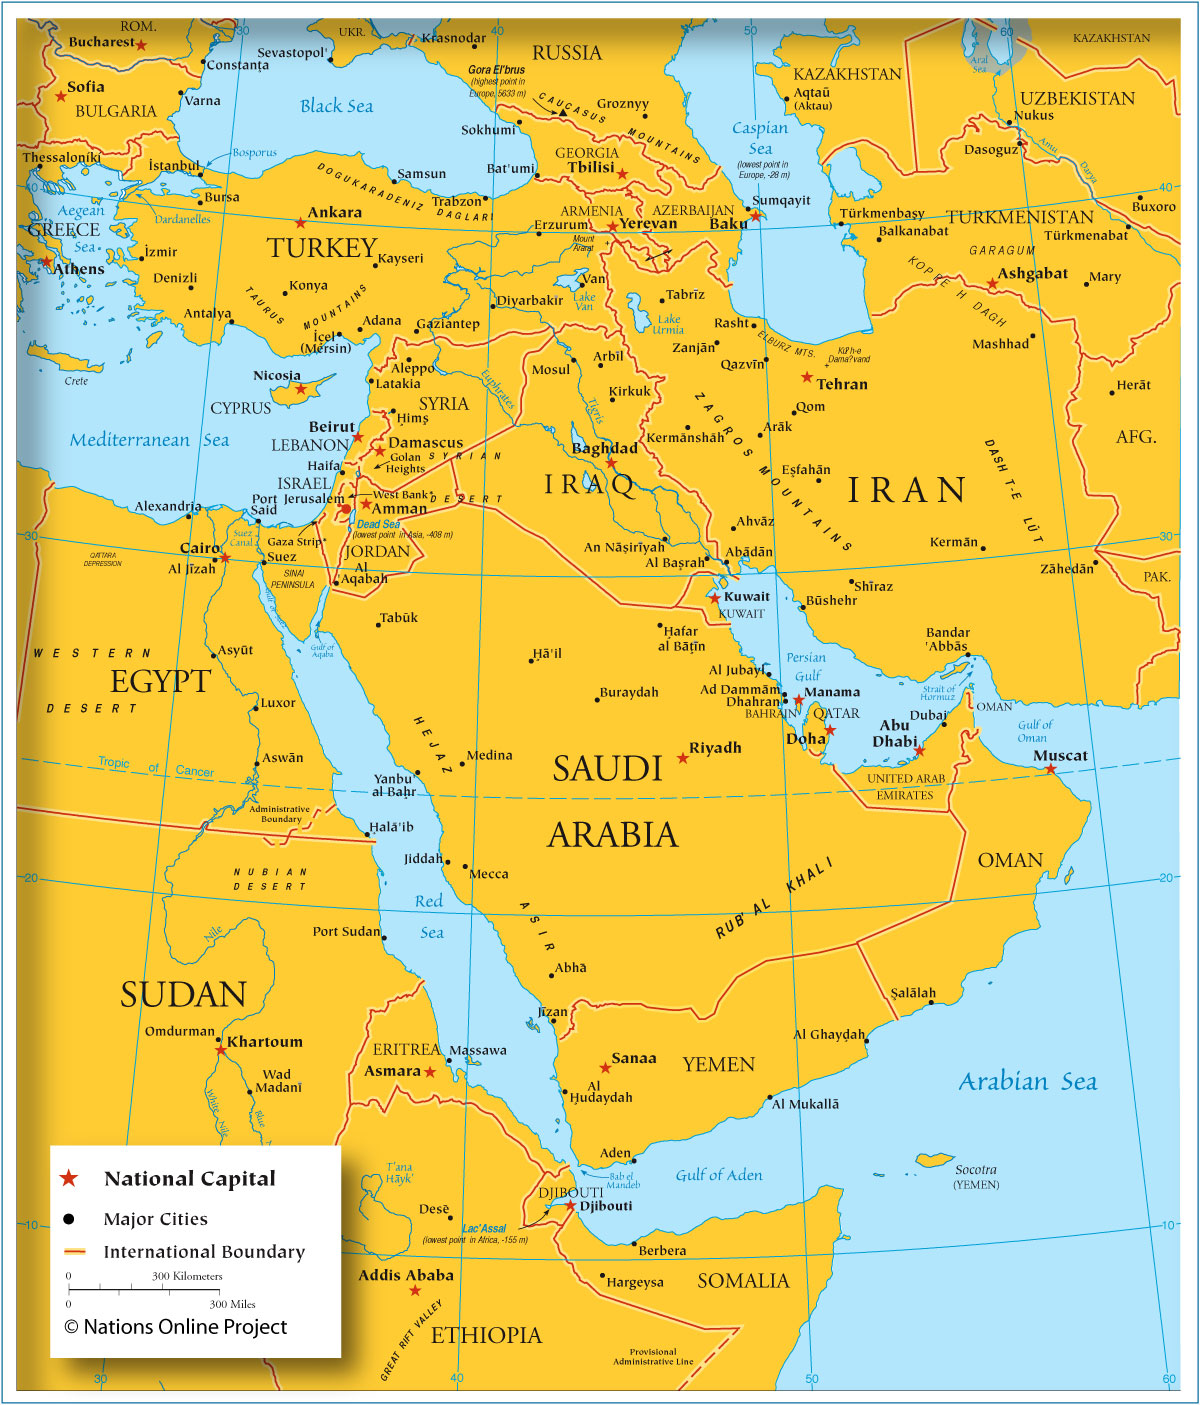 Southwest Asia Physical Map at Riverbend High School (VA) - StudyBlue